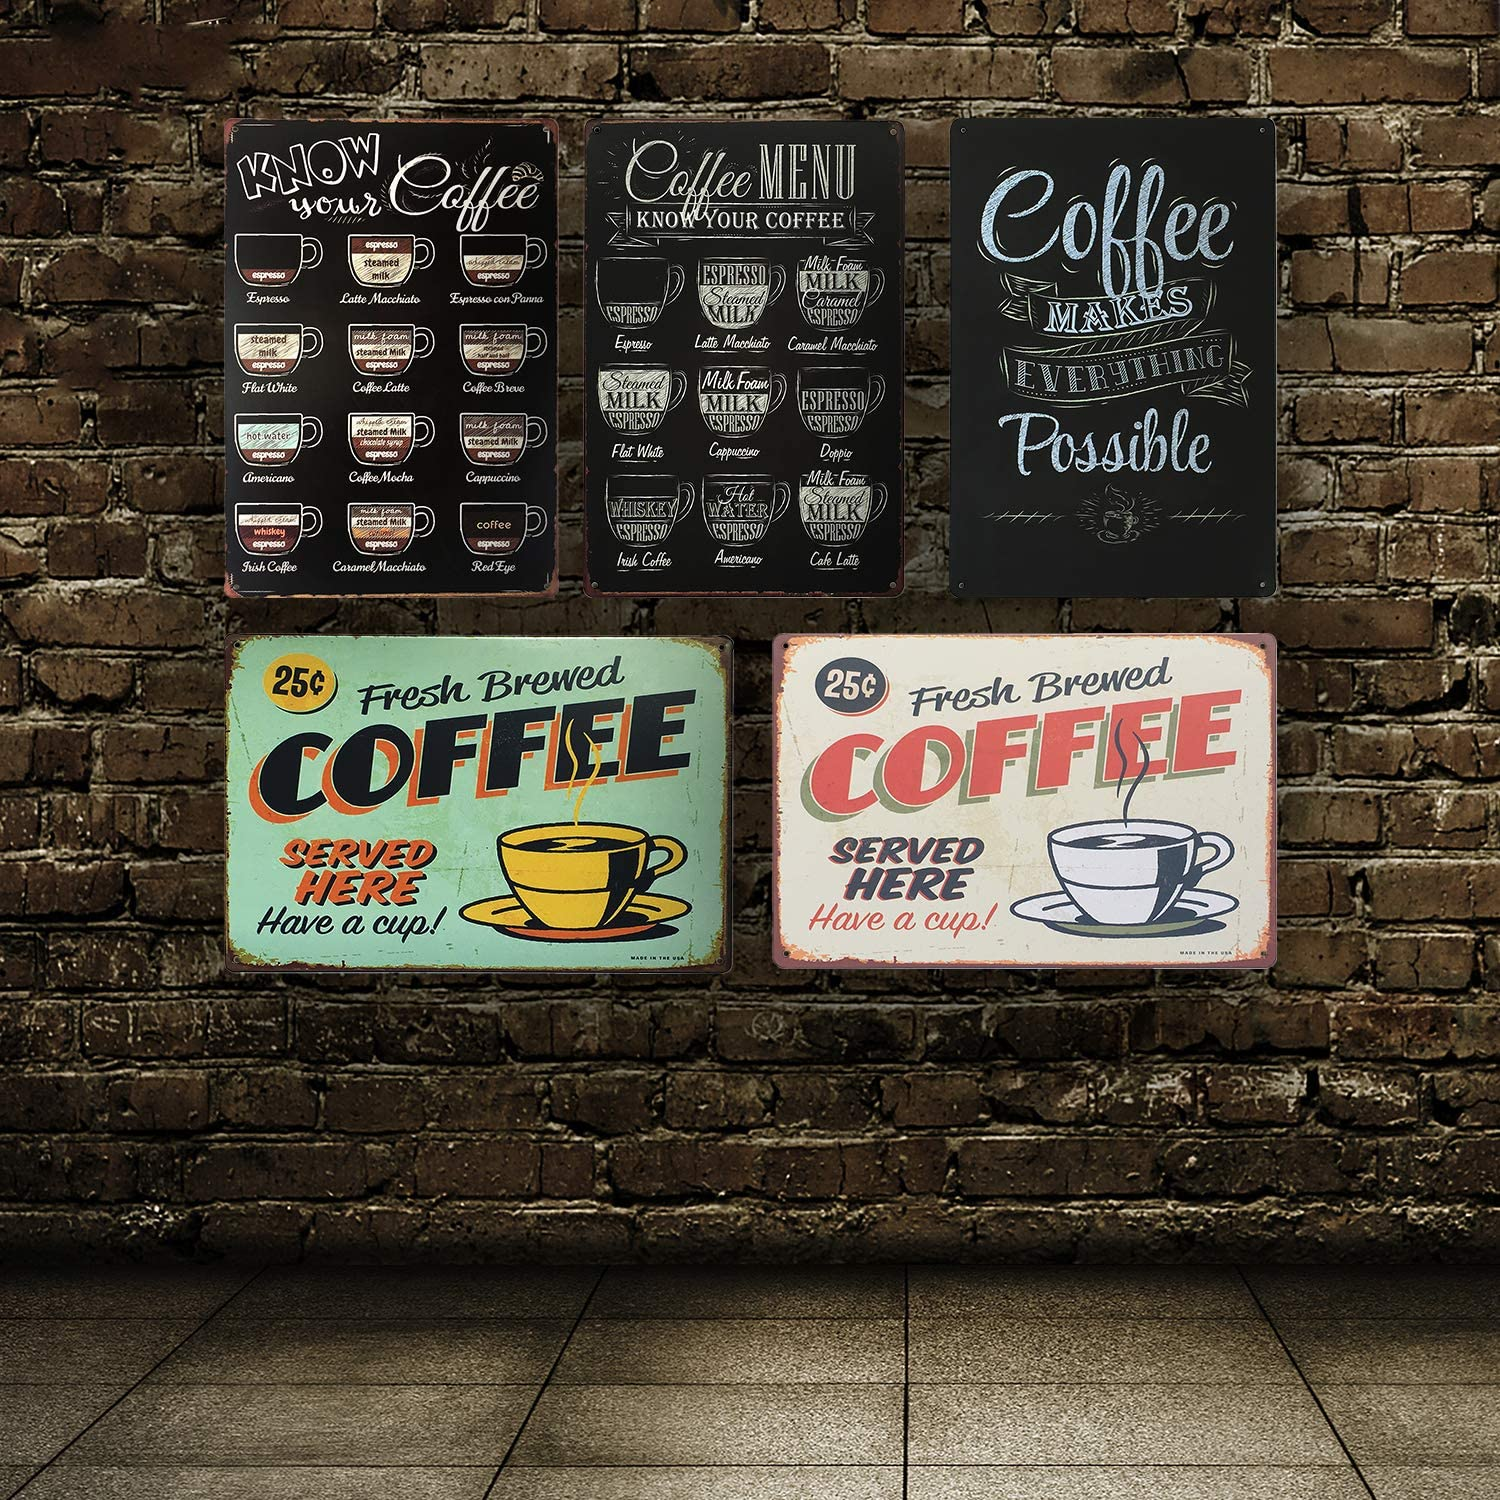 Small Coffee Menu Know Your Coffee Metal Signs Kitchen Decor and Accessories 8 X 12 Inches UNIQUELOVER Coffee Bar